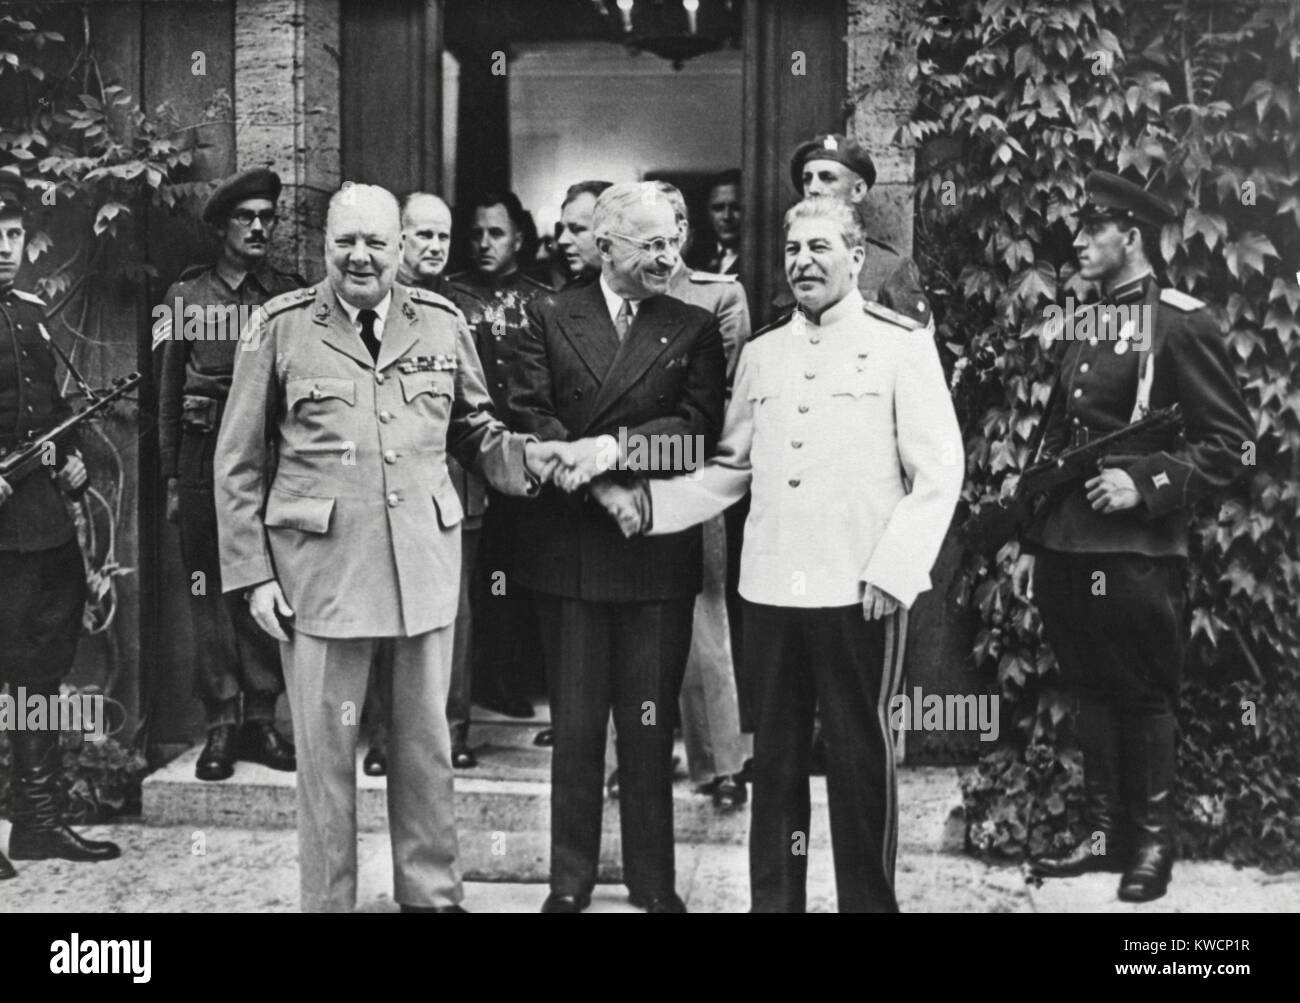 Joseph Stalin, Harry Truman, and Winston Churchill at the Potsdam Conference. While there, Churchill's Conservative - Stock Image